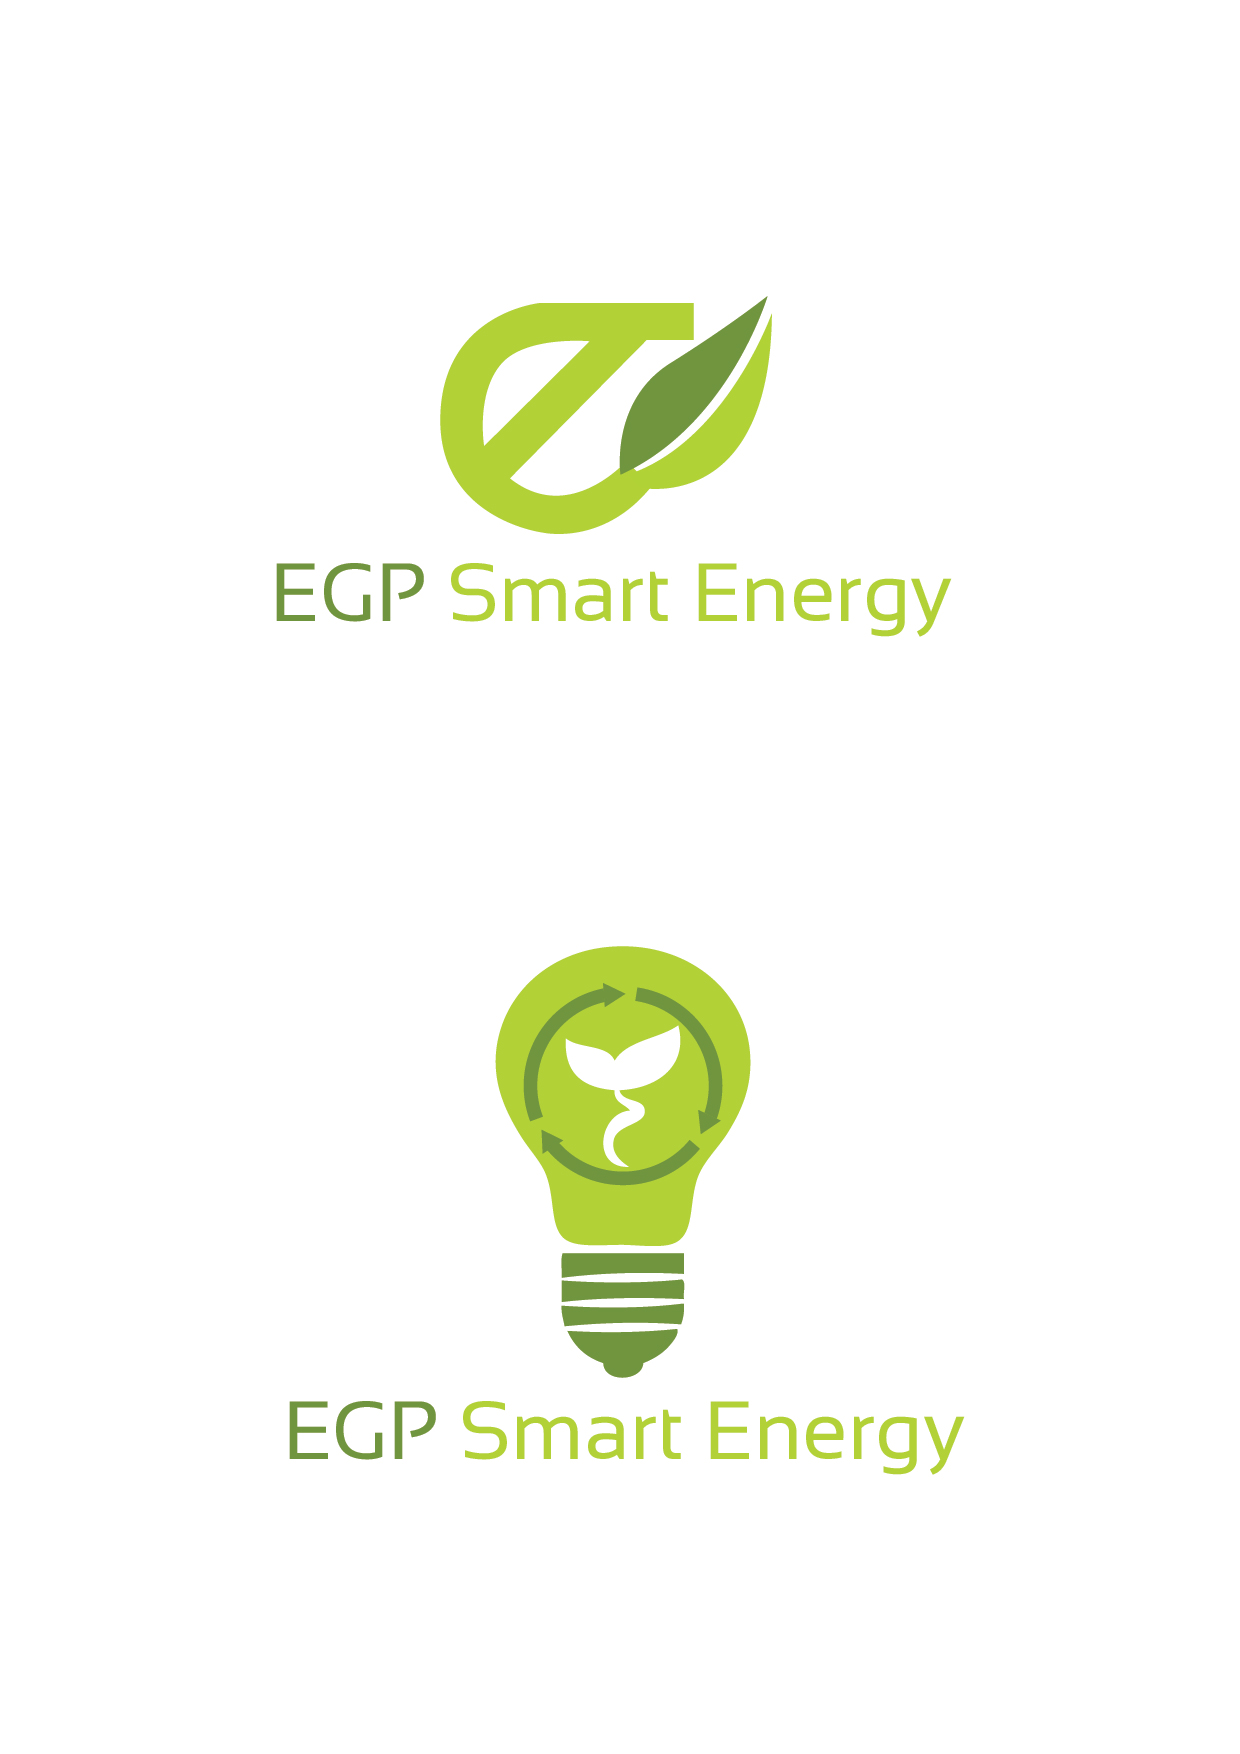 Logo Design by mediaproductionart - Entry No. 42 in the Logo Design Contest Captivating Logo Design for EGP Smart Energy.